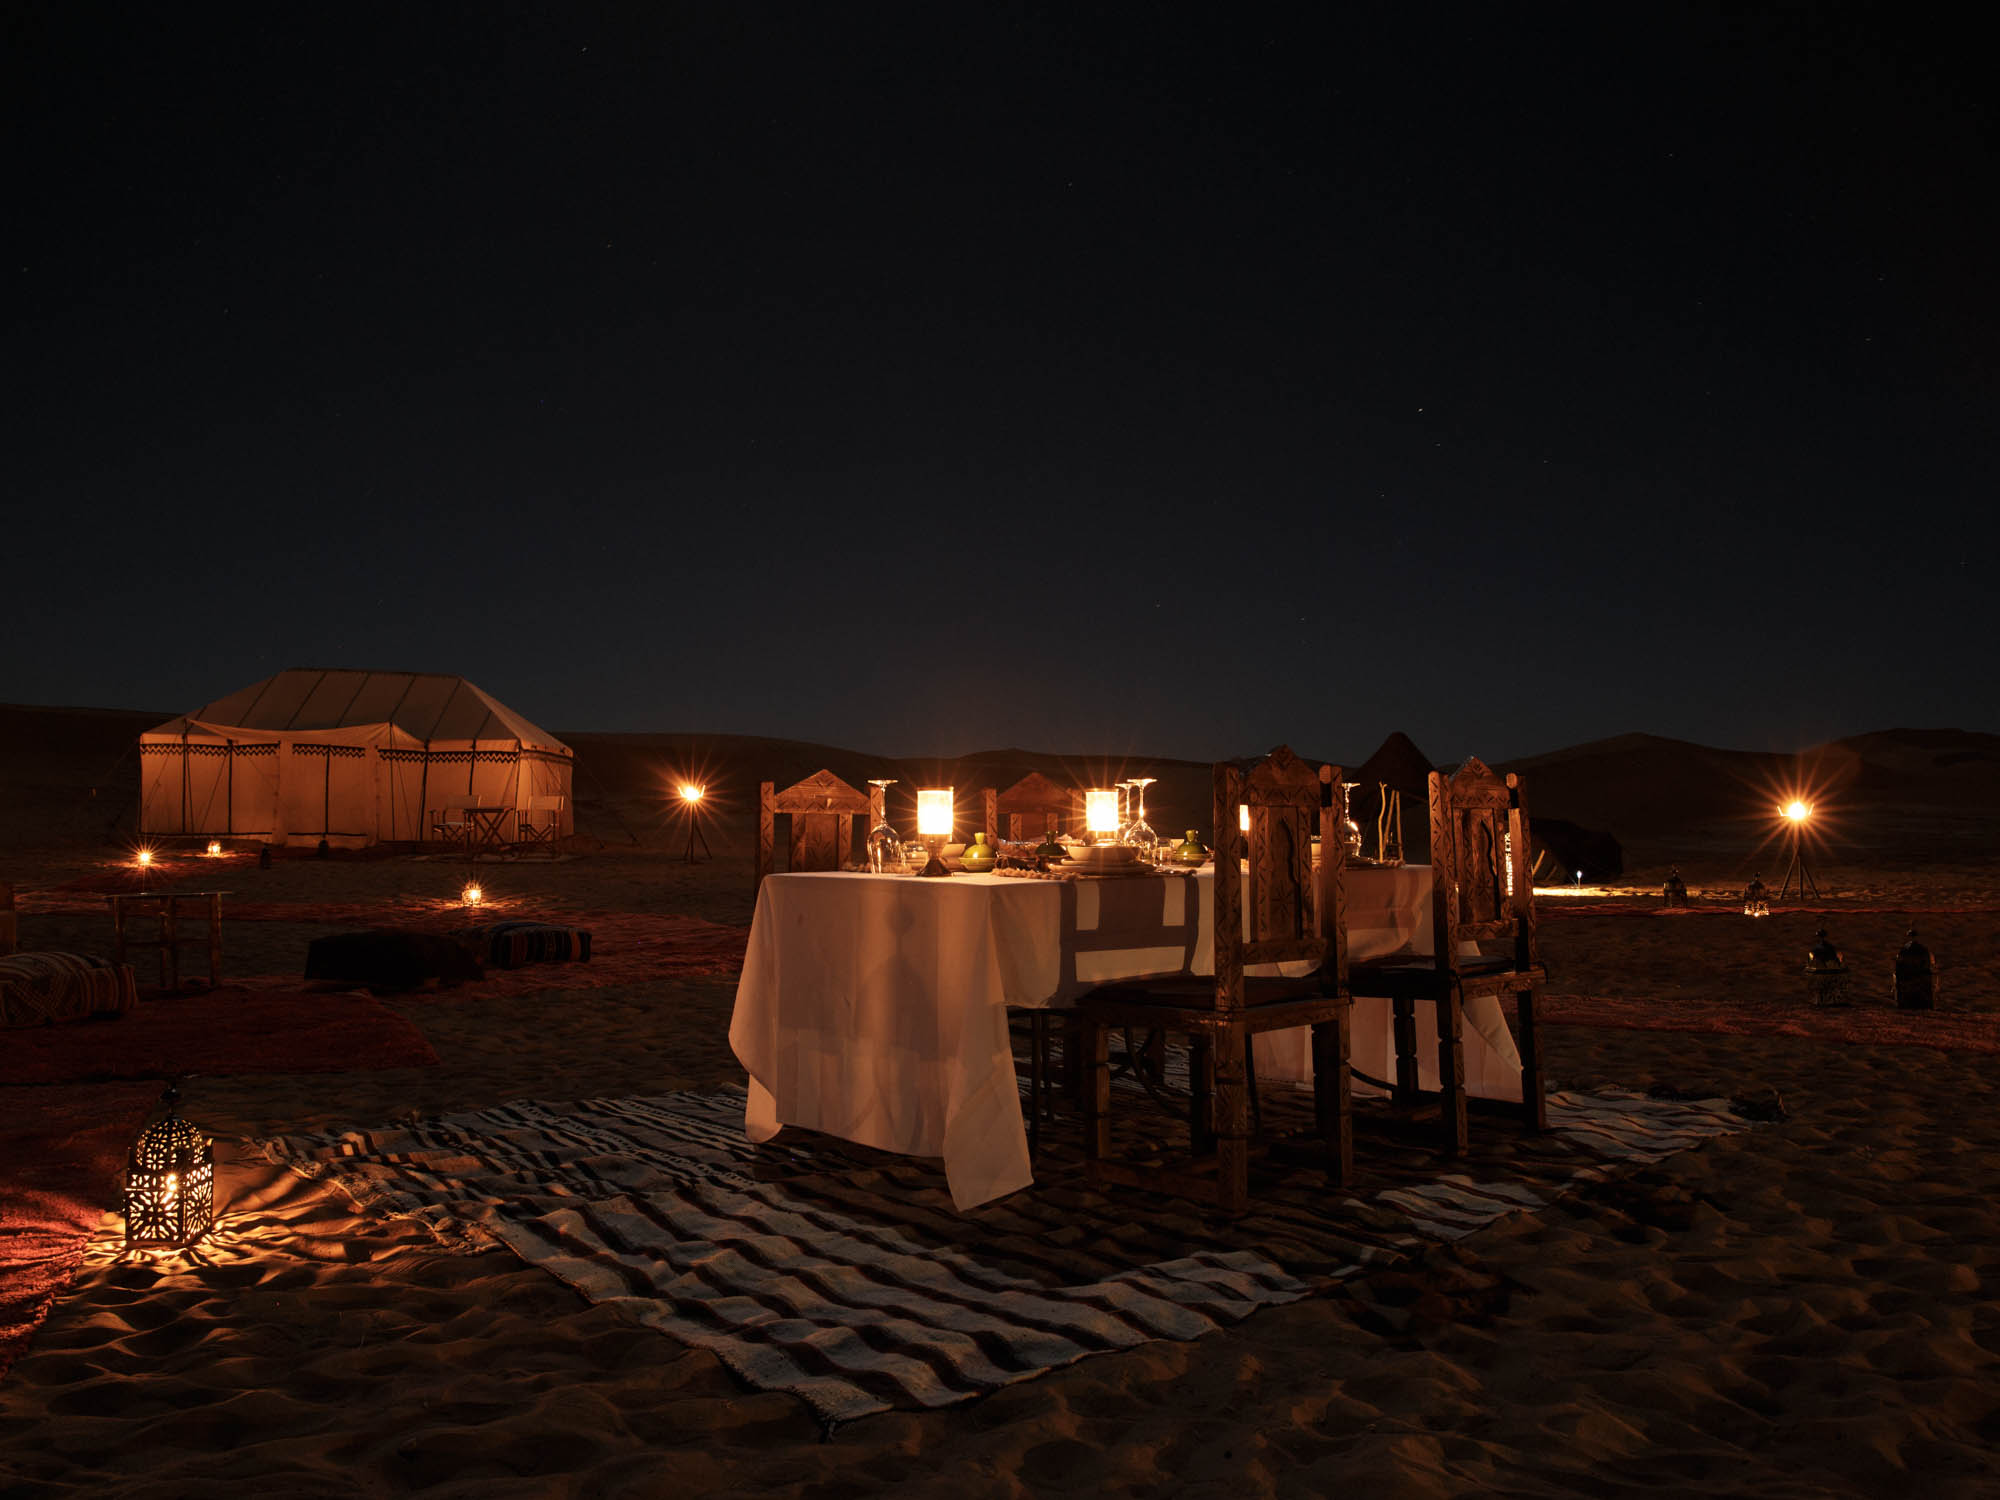 Romantic Candle Lit Night Time Dining at Desert Camp Morocco